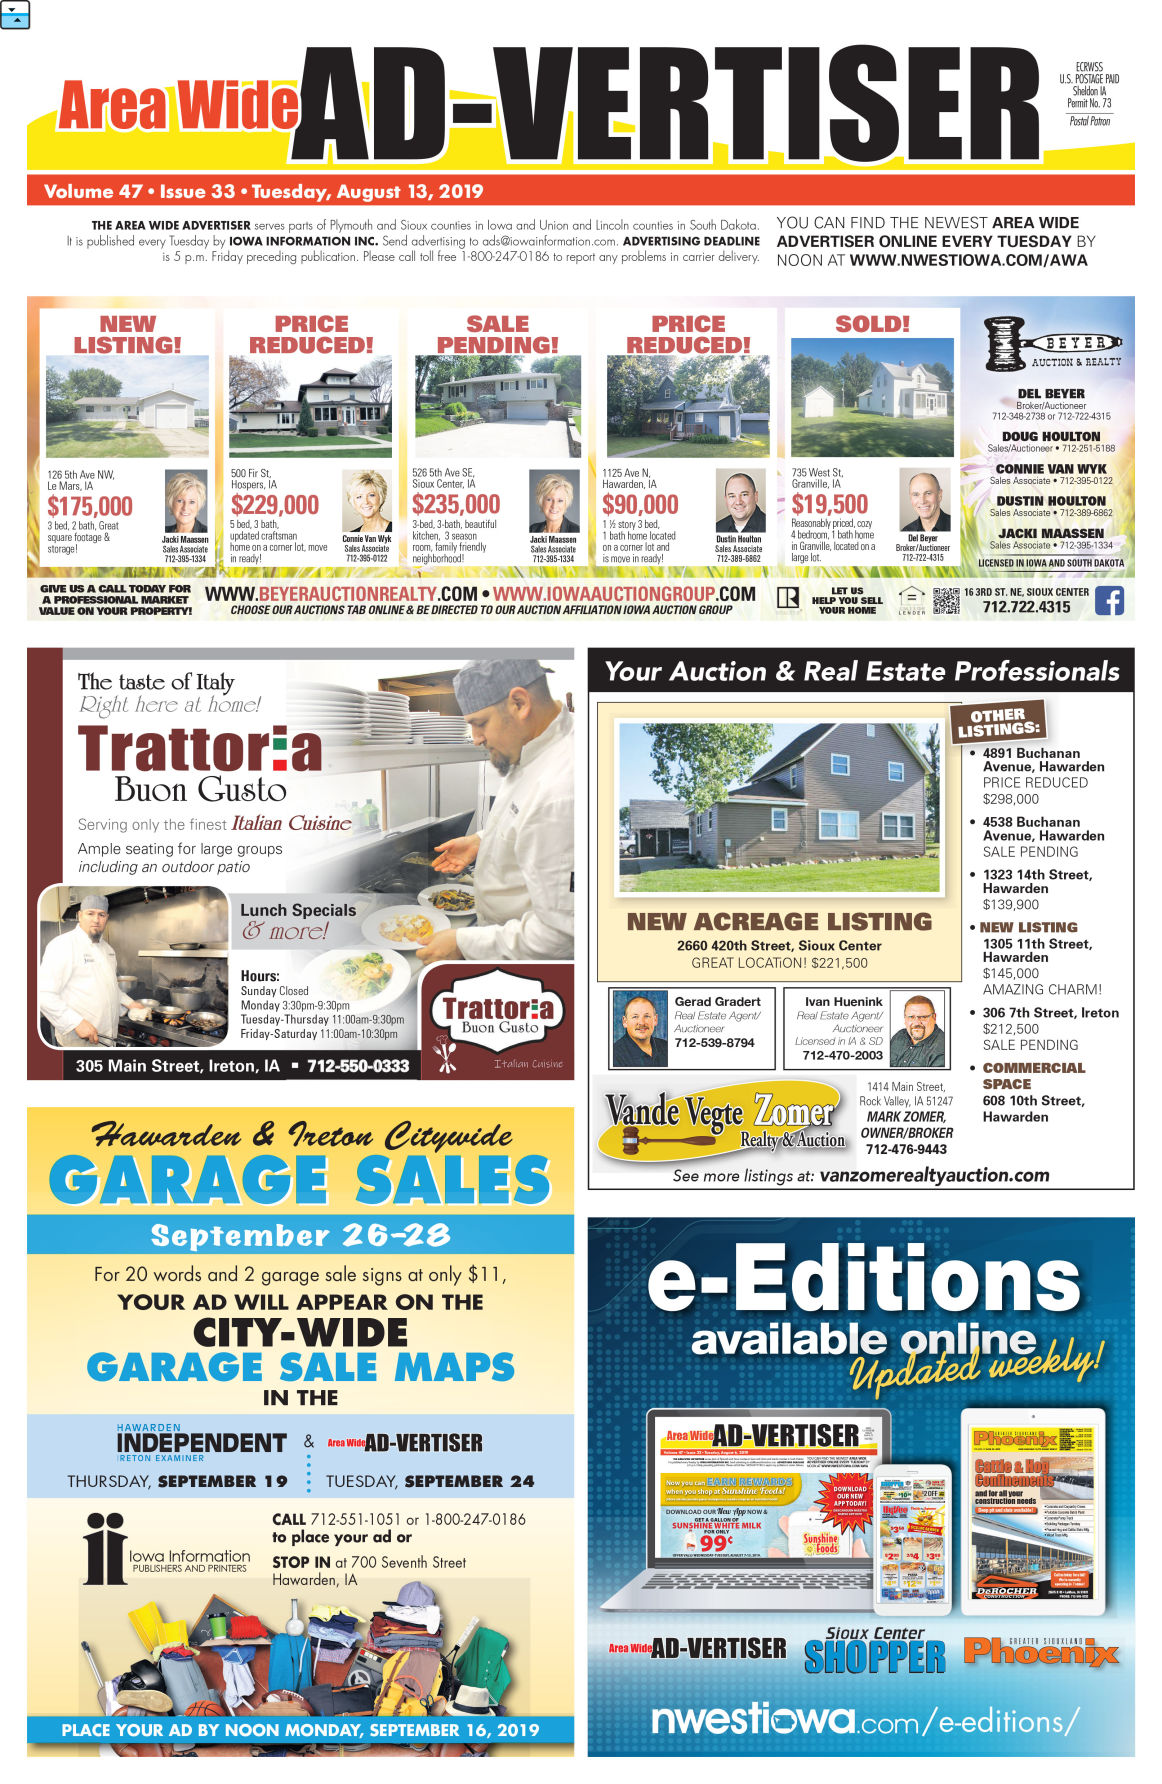 Area Wide Ad-vertiser: August 13, 2019